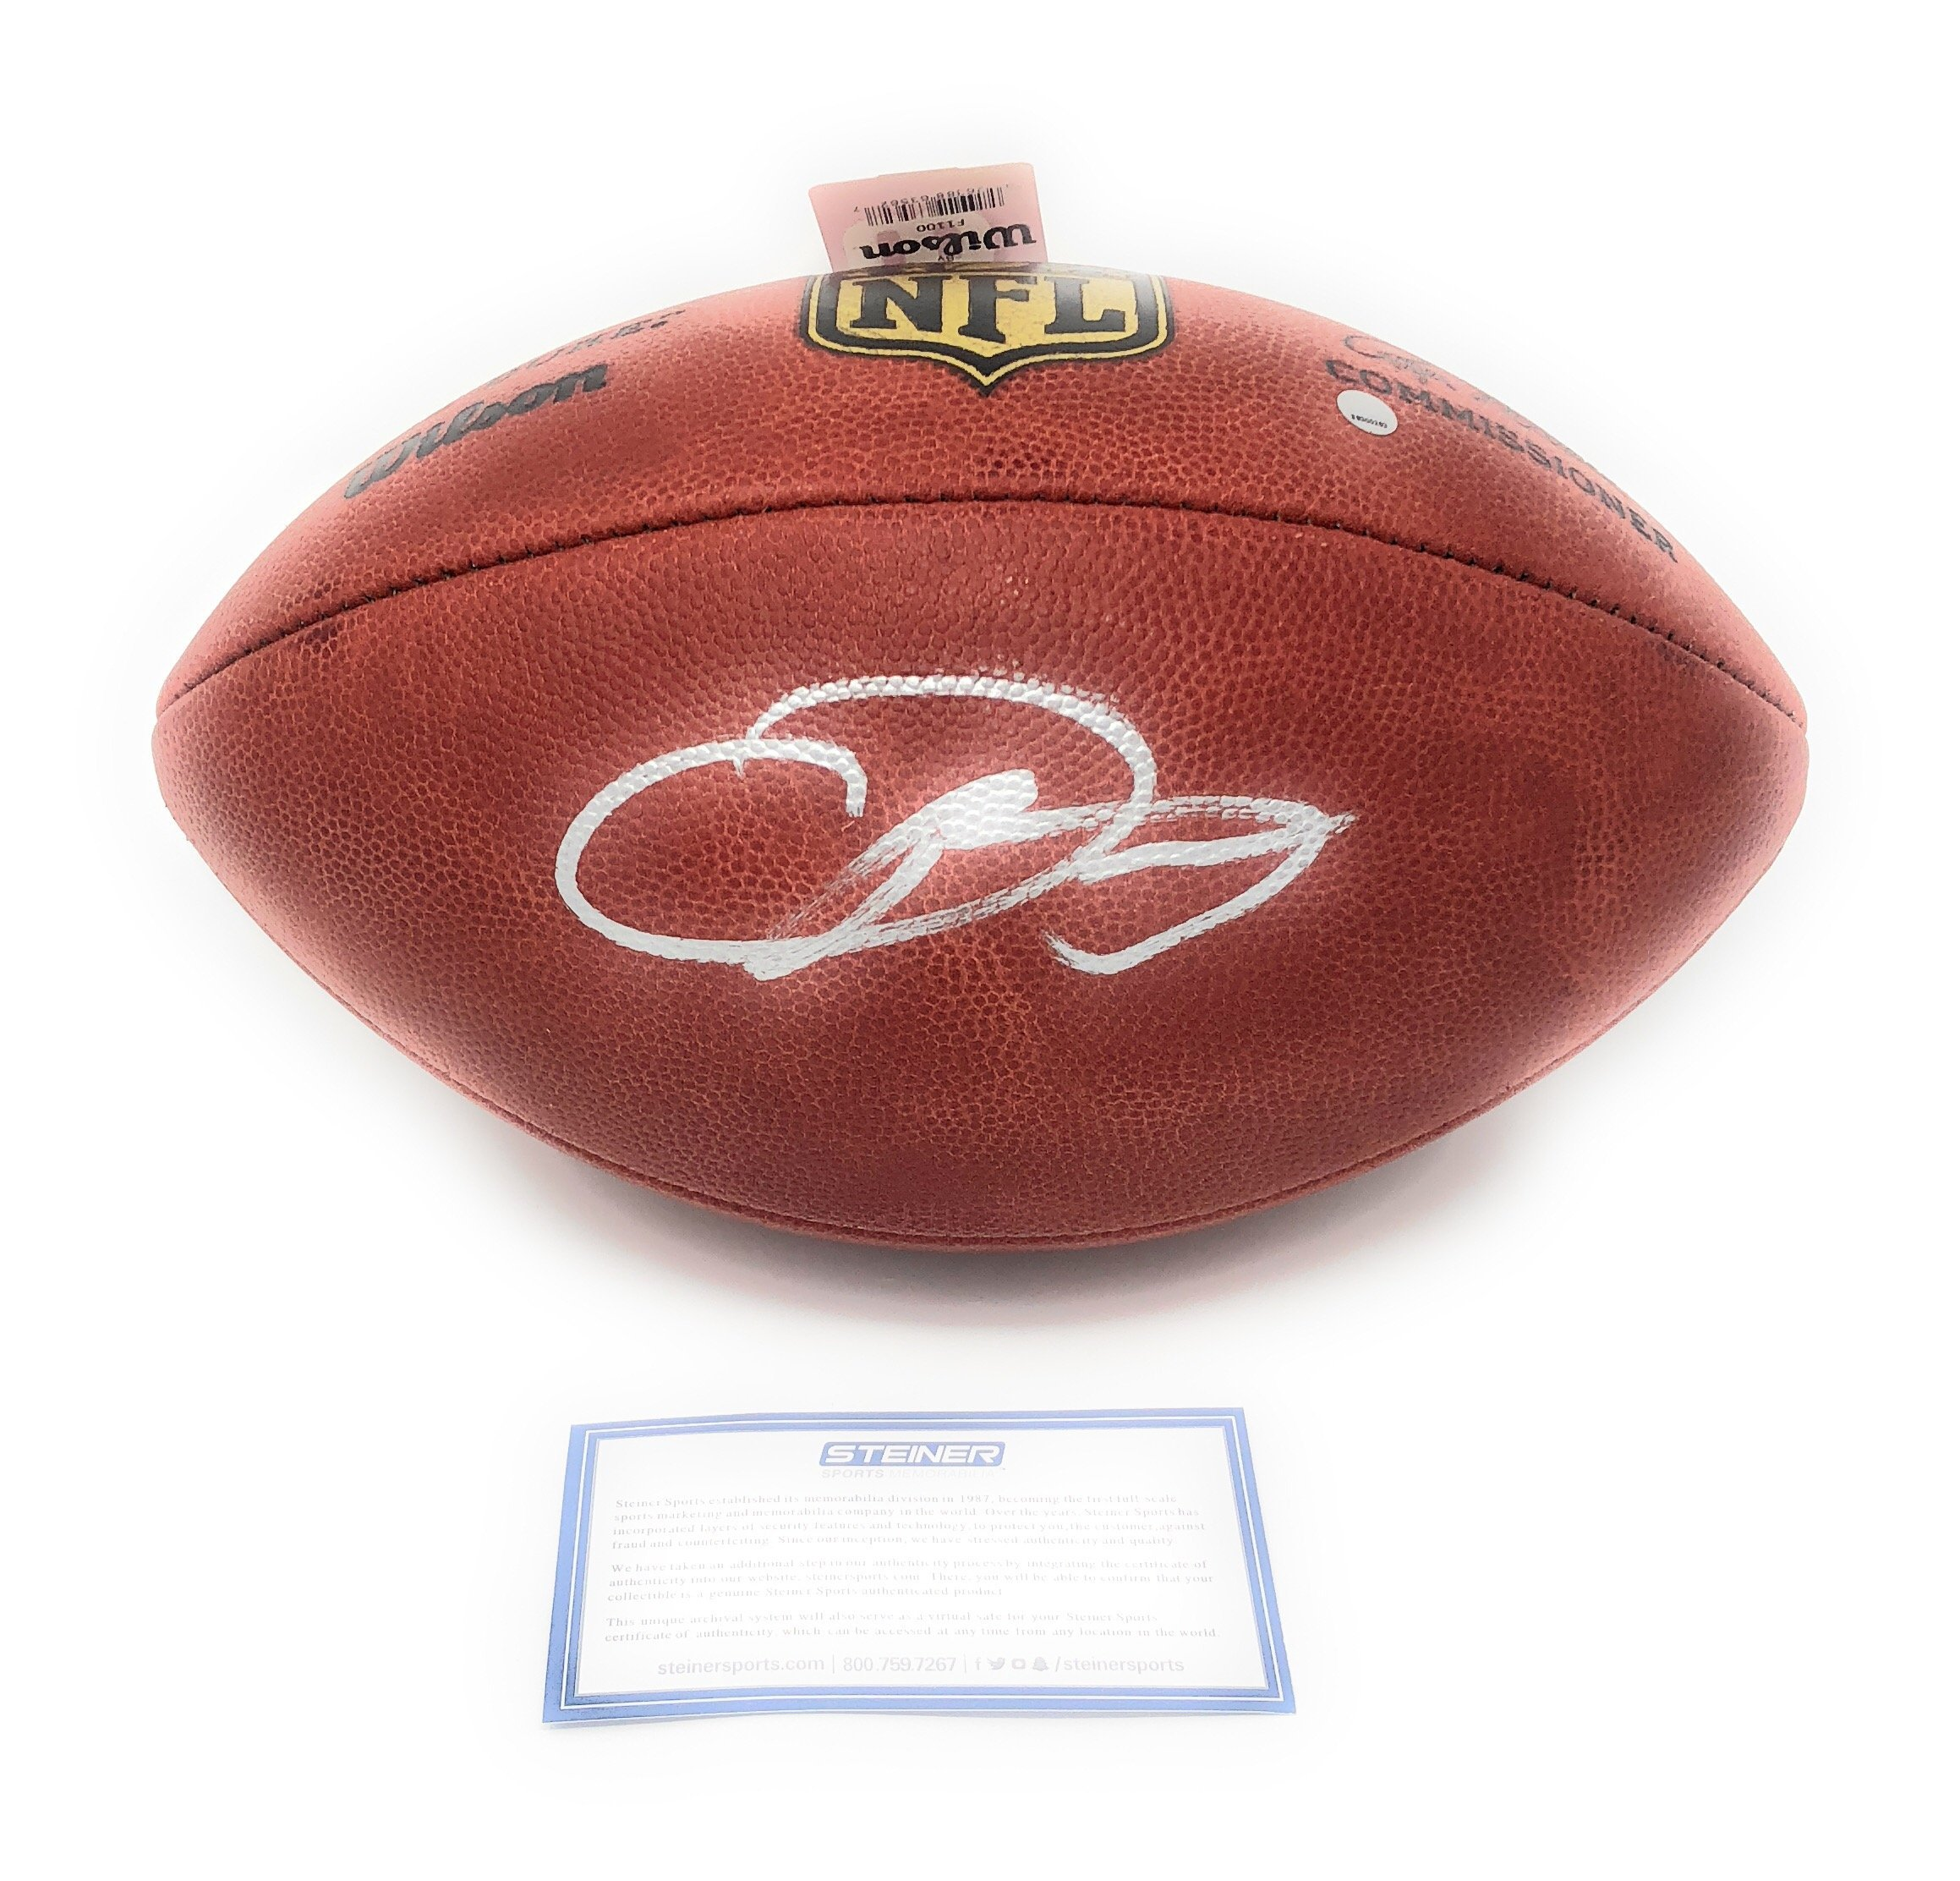 Odell Beckham Jr New York Giants Signed Autograph Authentic NFL Duke Football Steiner Sports Certified